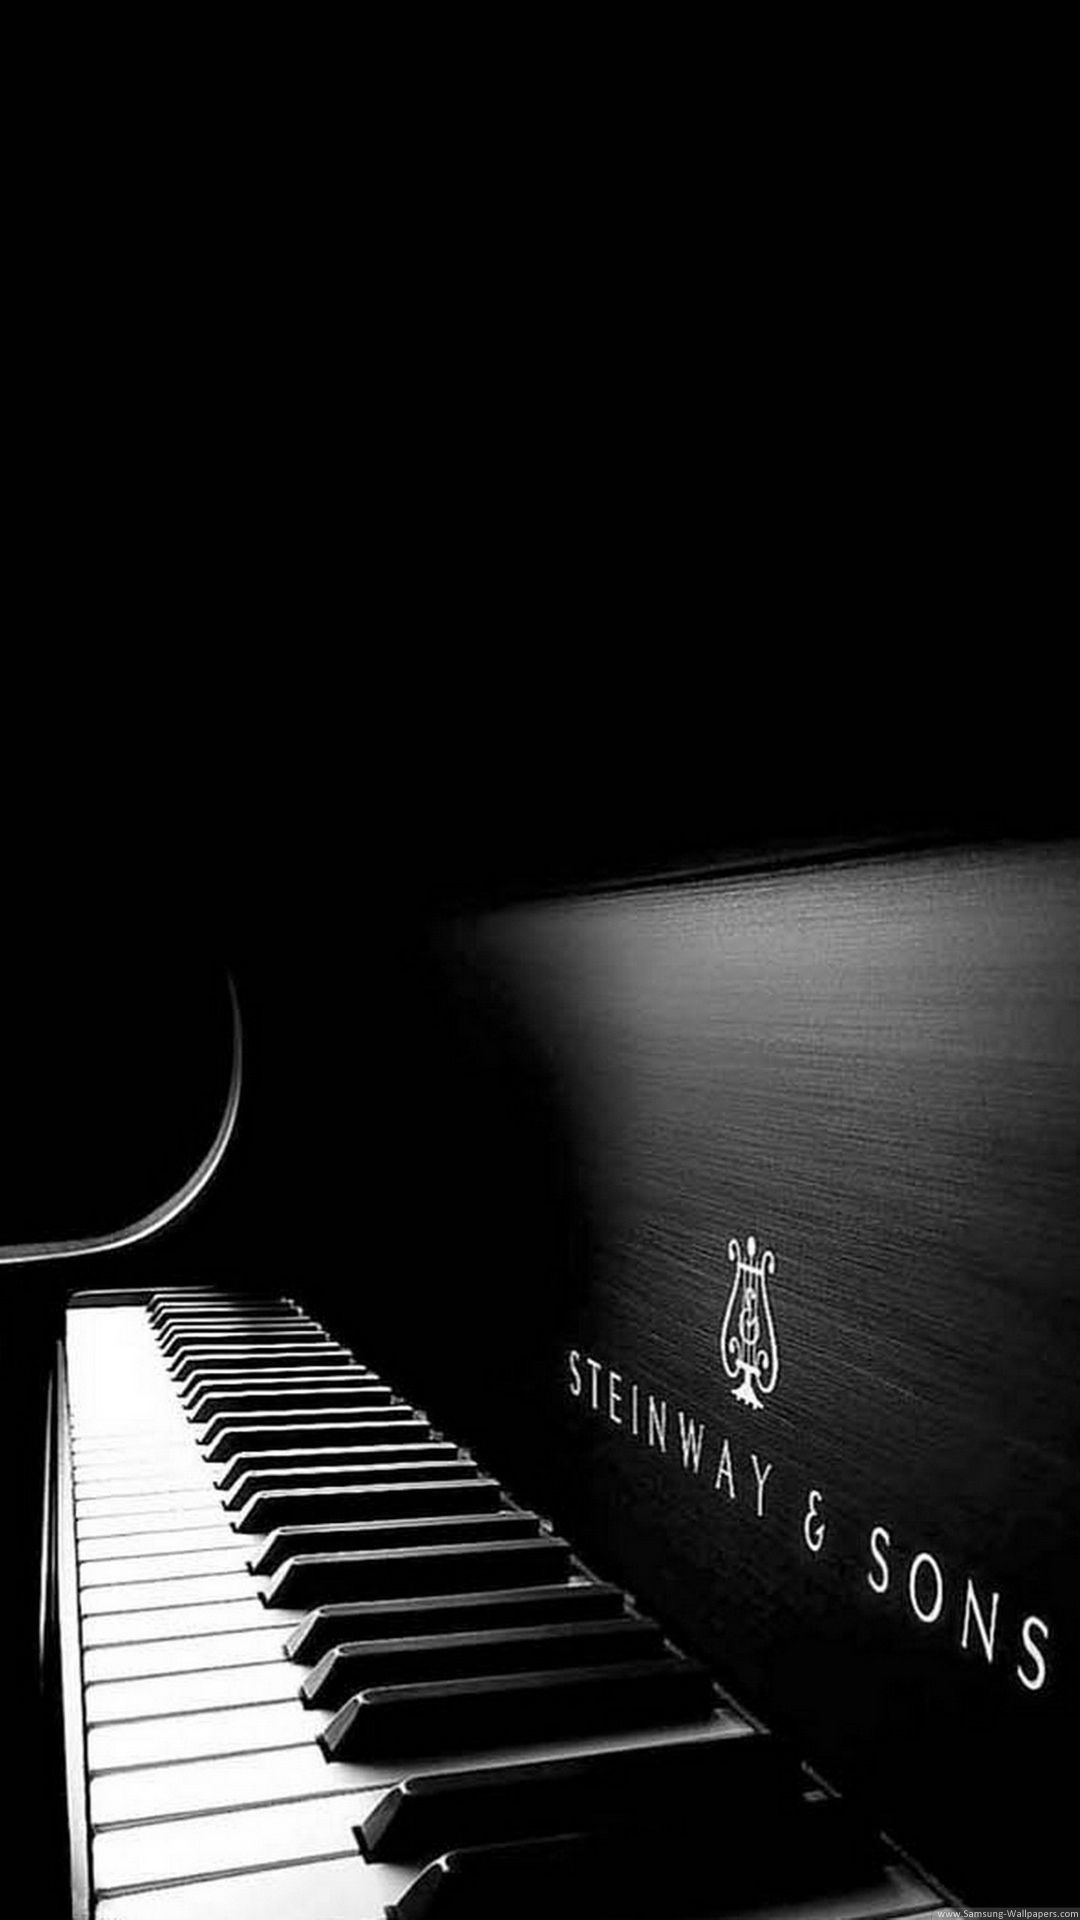 70 Music iPhone Wallpapers For Music Manias Piano photography 1080x1920